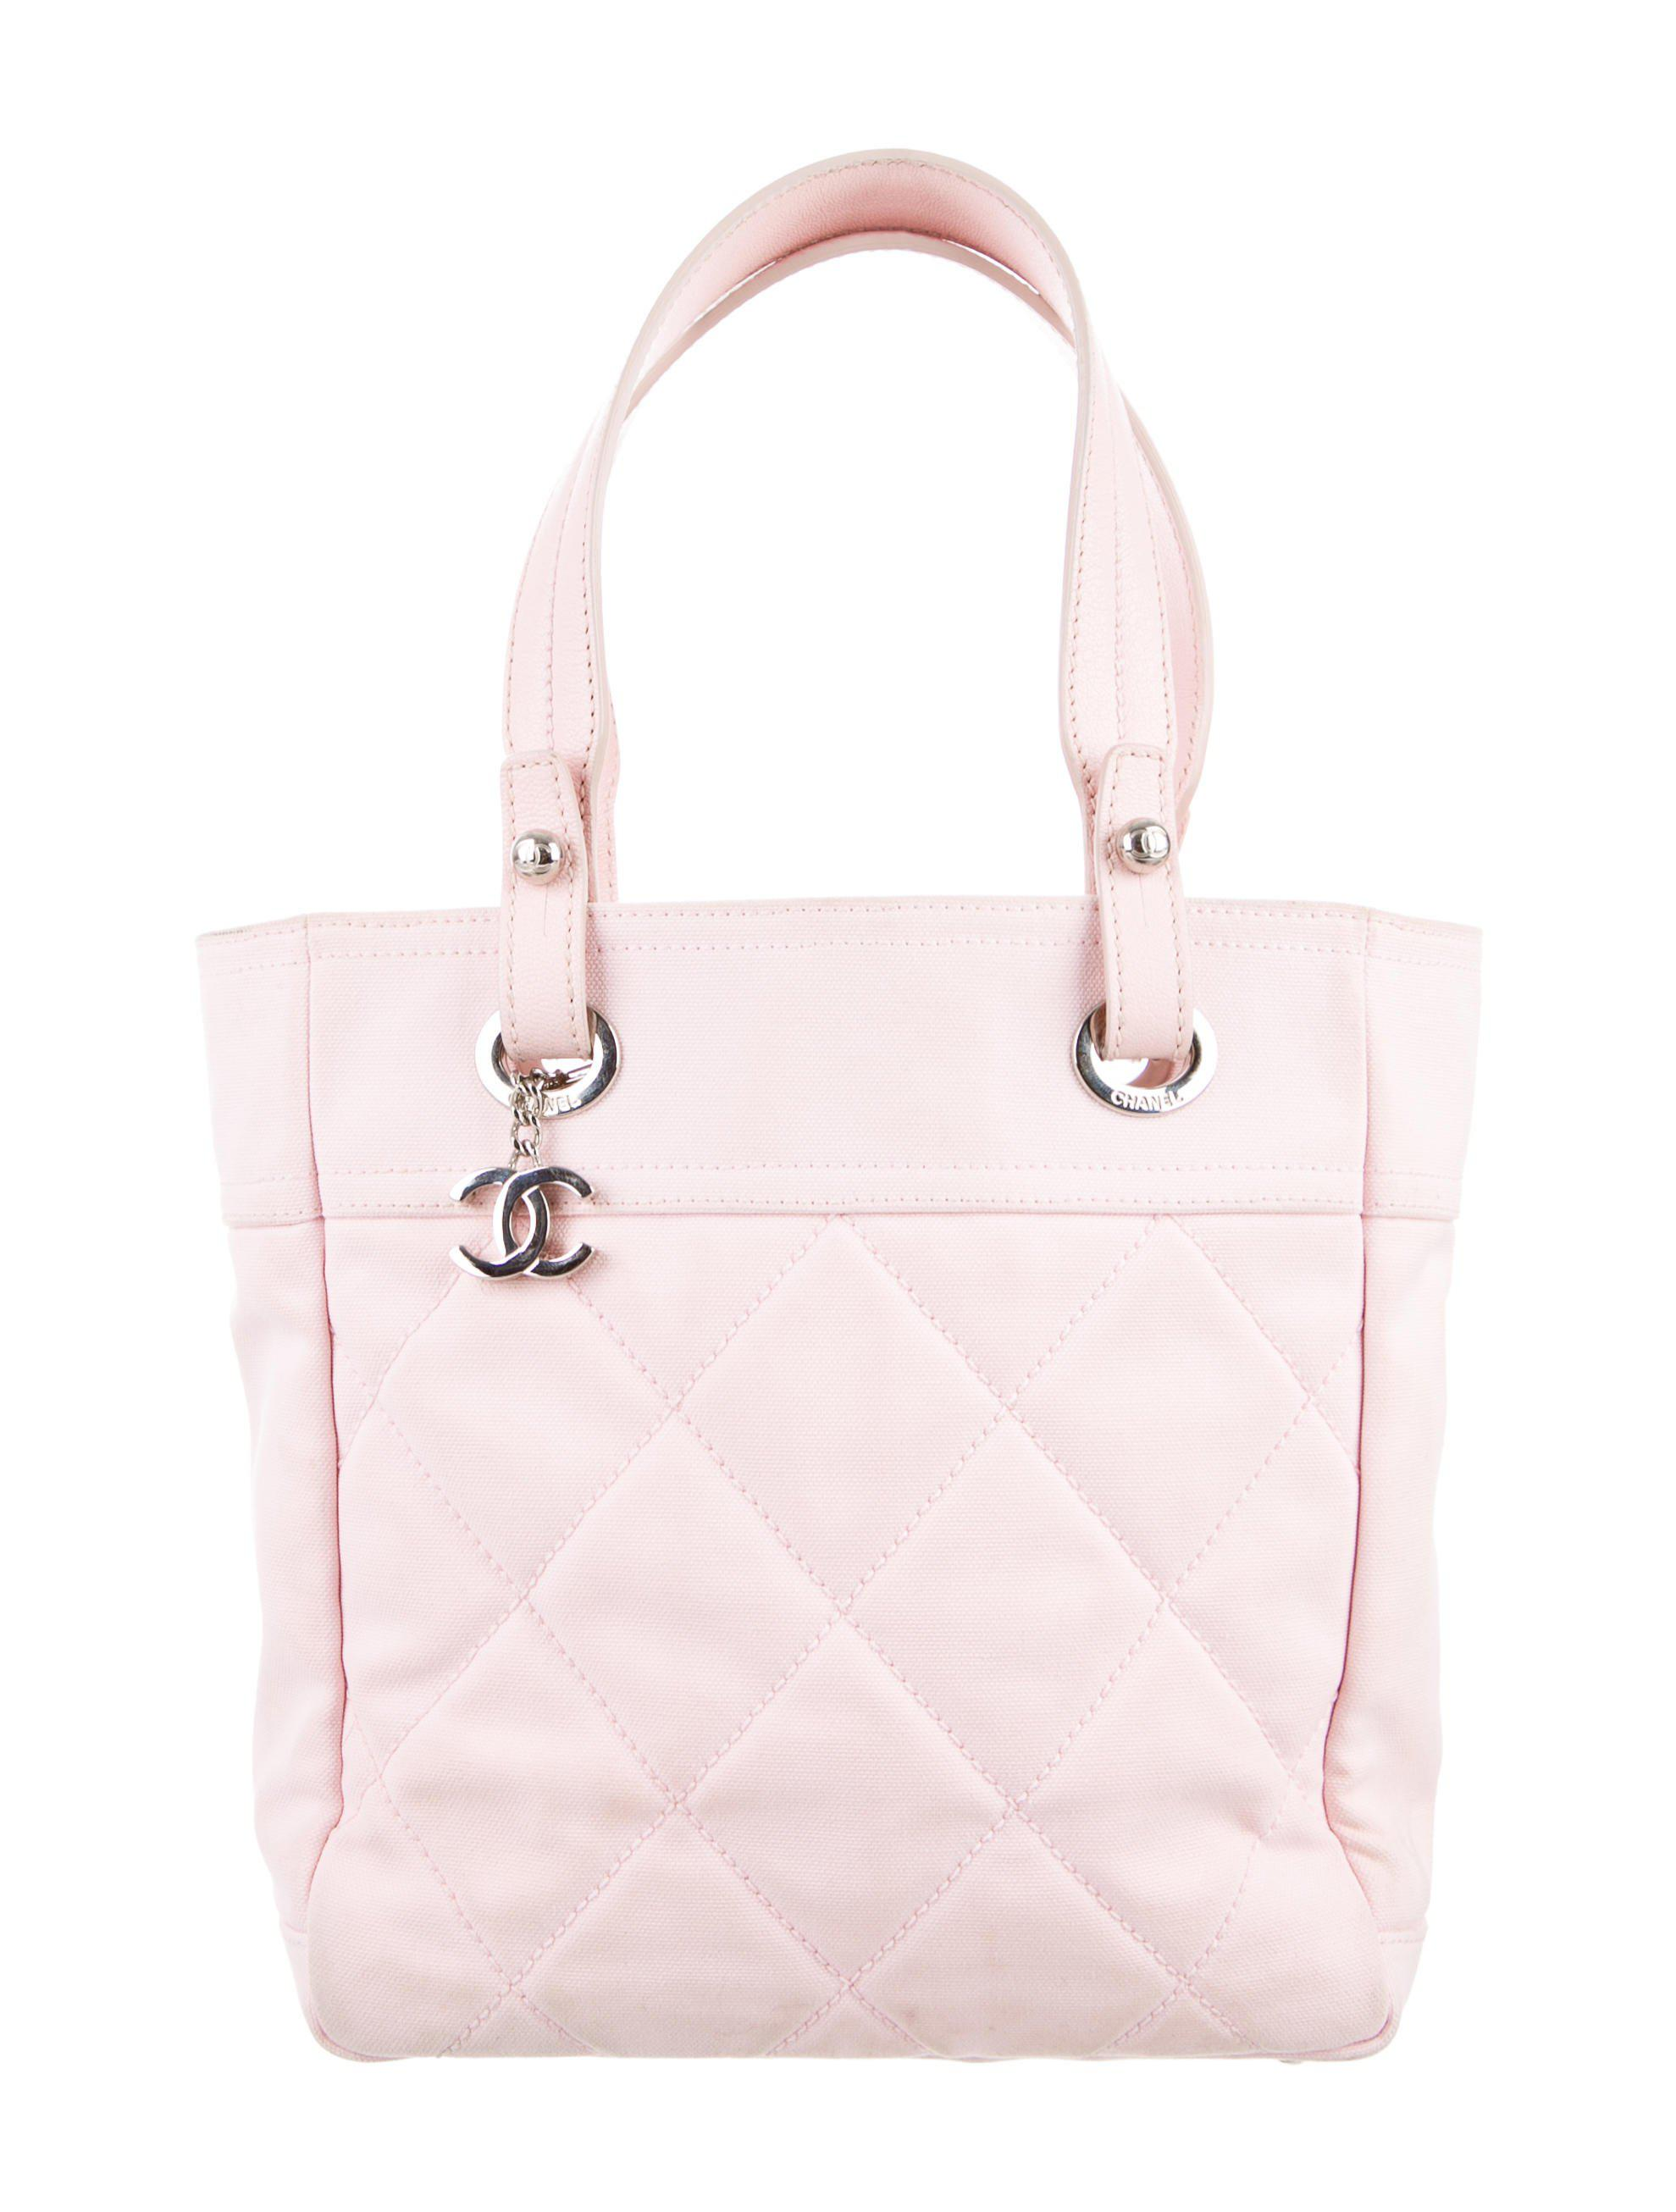 53cb5b7b5ddb Lyst - Chanel Paris-biarritz Small Tote Pink in Metallic